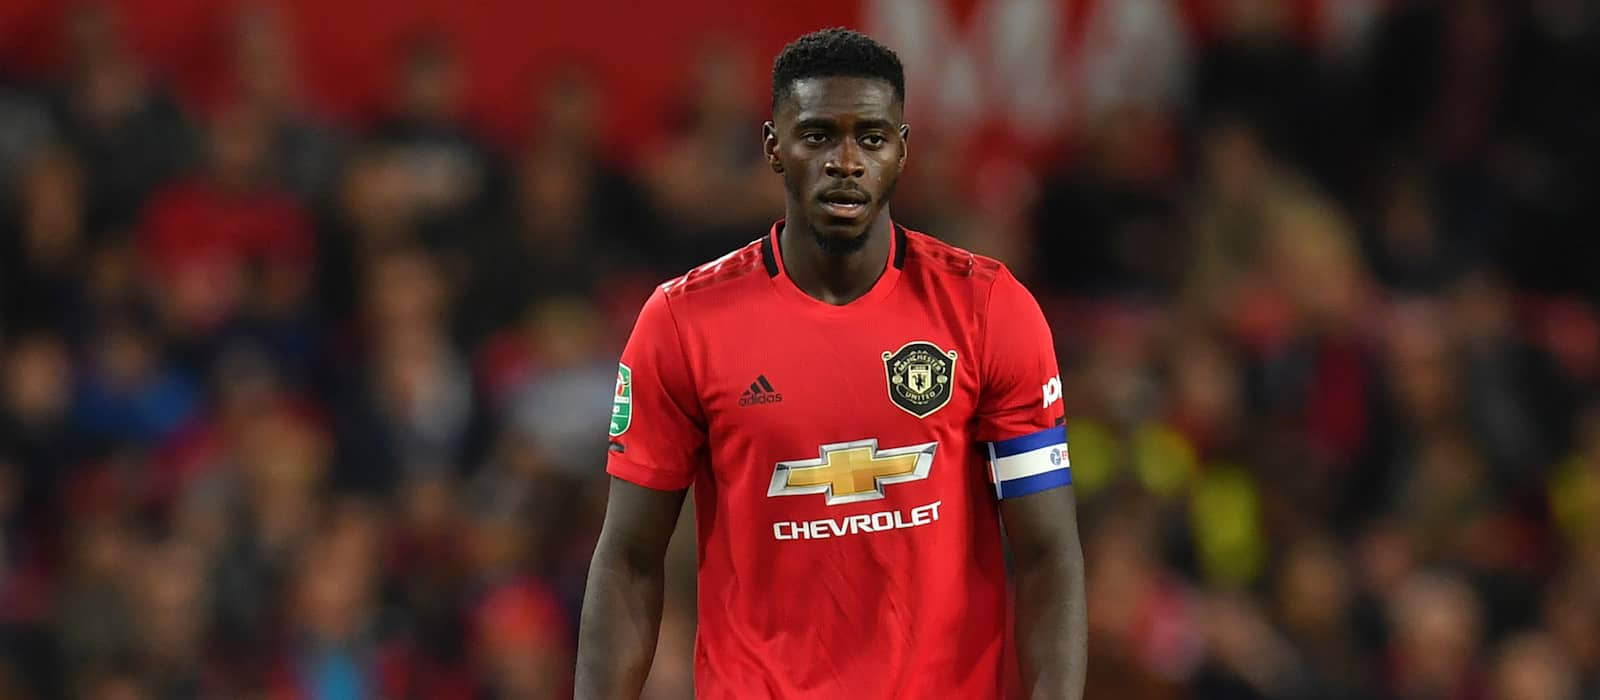 Ole Gunnar Solskjaer identifies Axel Tuanzebe, Harry Maguire as future Manchester United captains